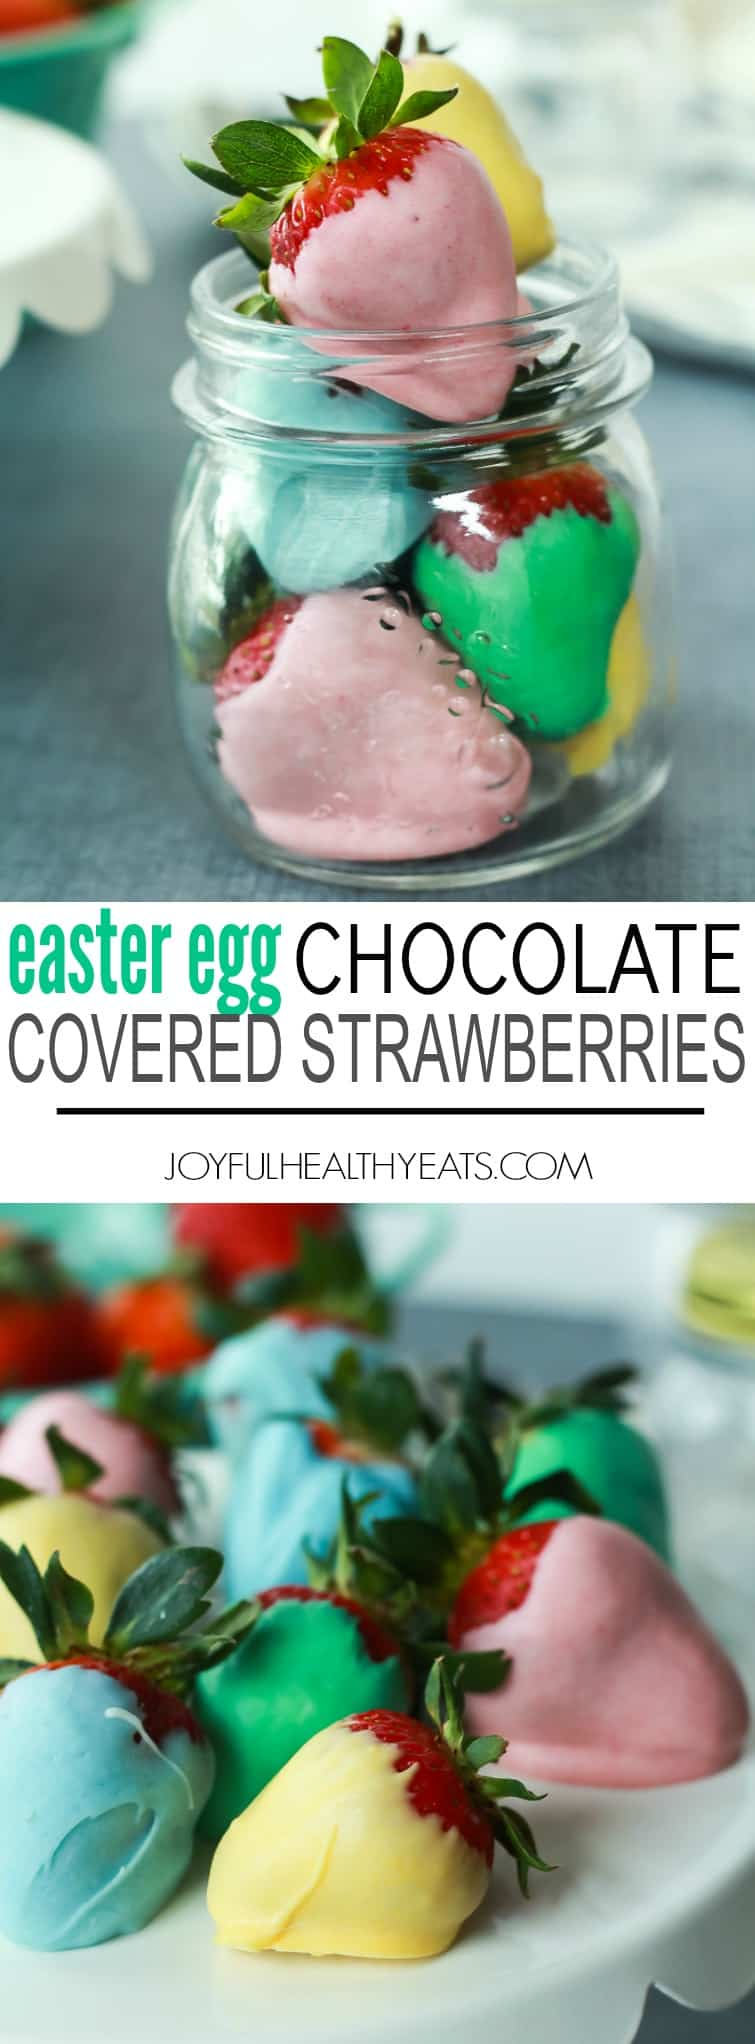 Easter Egg Chocolate Covered Strawberries Recipe using three ingredients - a fun festive dessert to make with your kids for Easter! | joyfulhealthyeats.com #eastereggcrafts